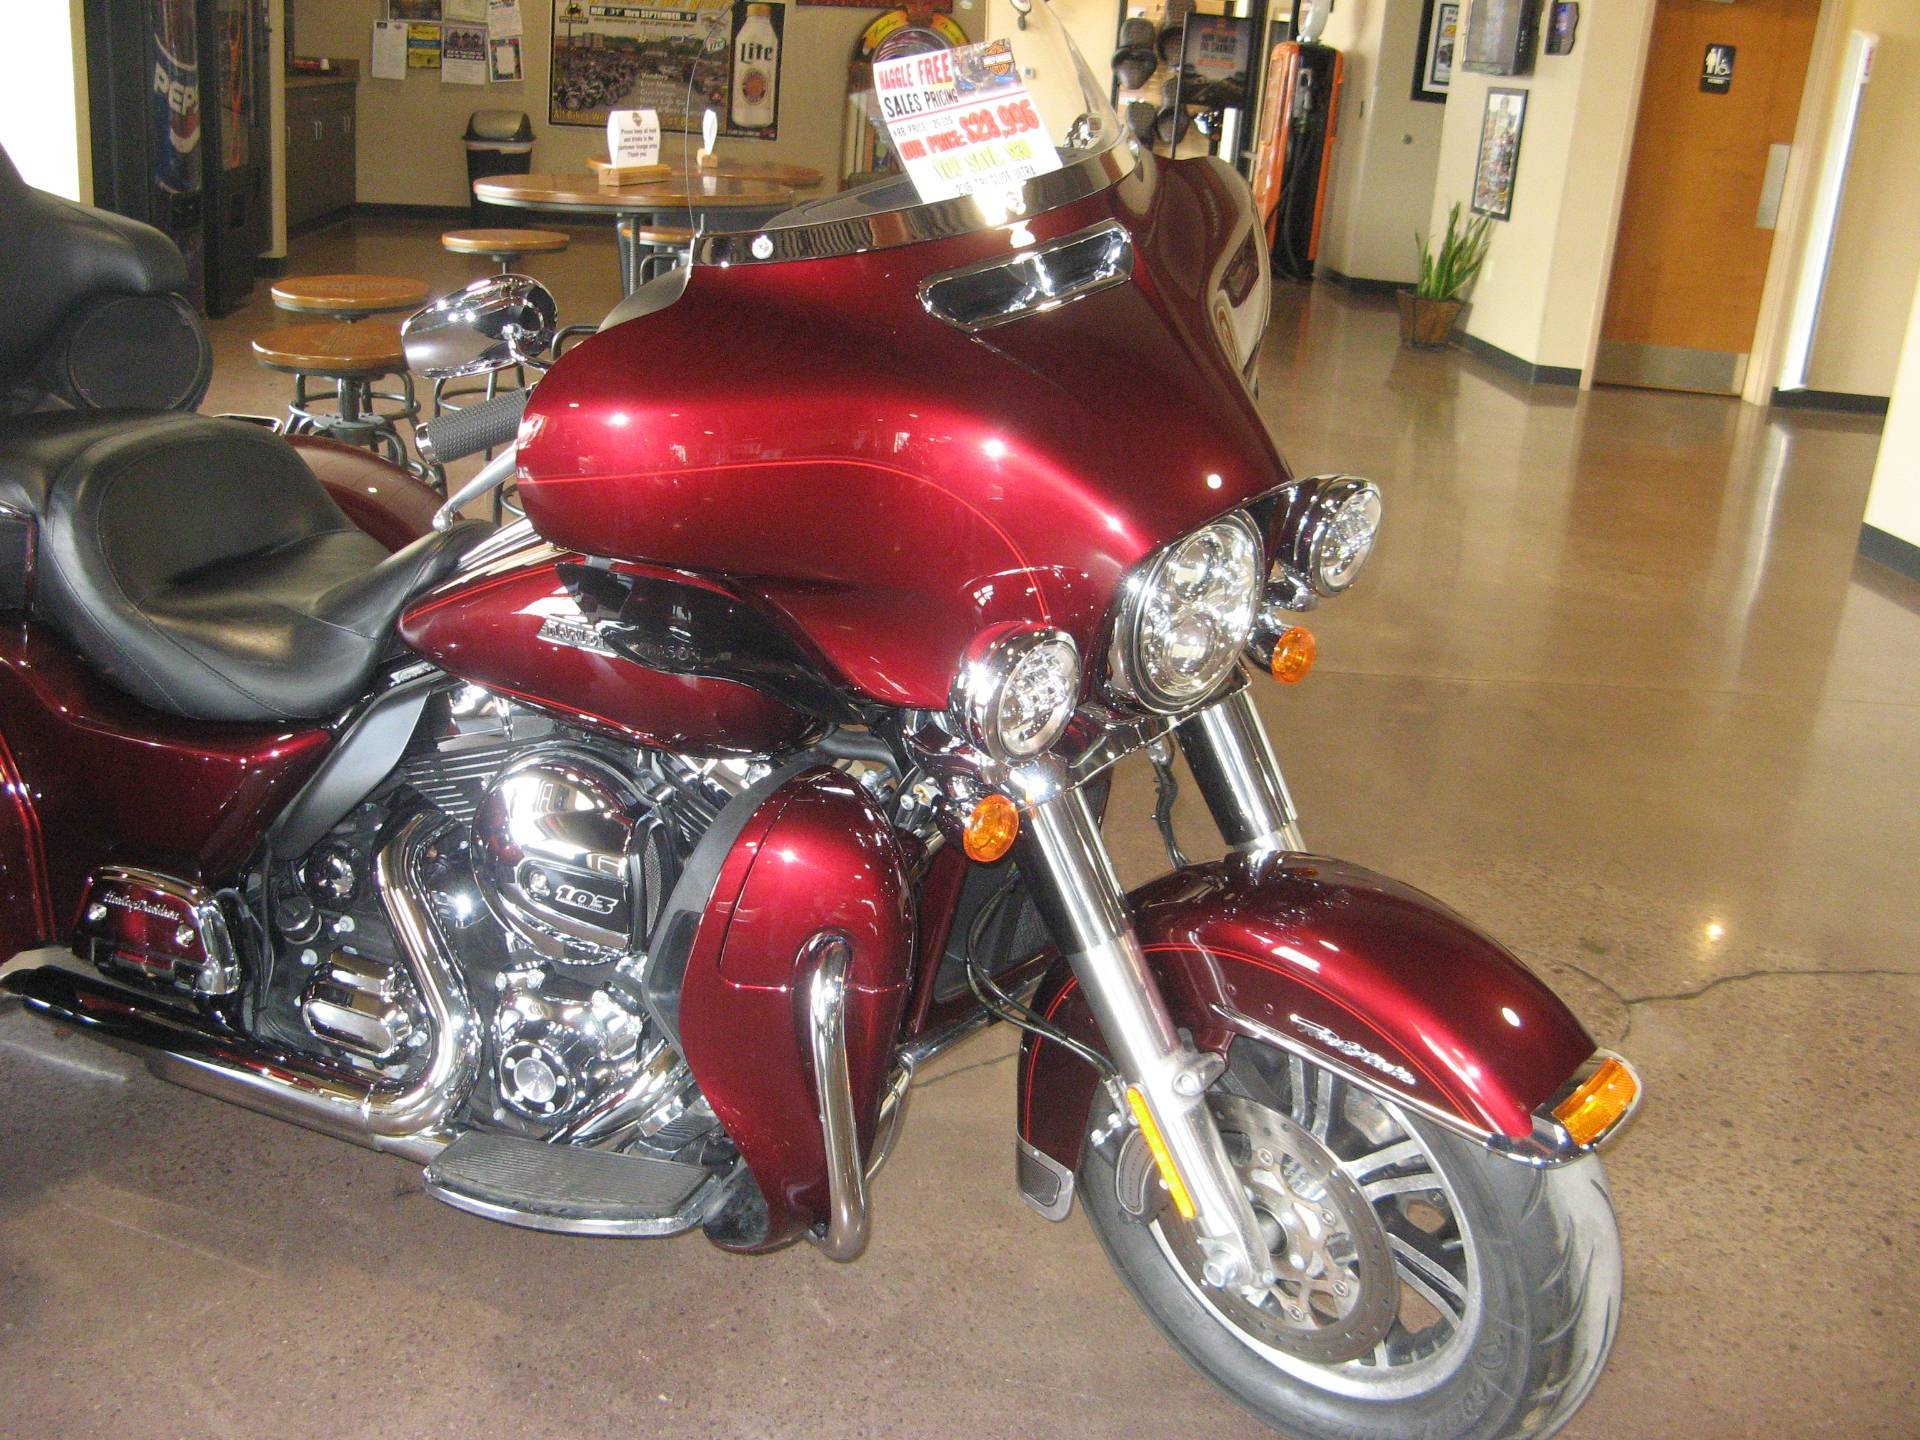 Used 2015 Harley Davidson Tri Glide Ultra Trikes In Erie Pa Tour Pack Glide174 Pennsylvania